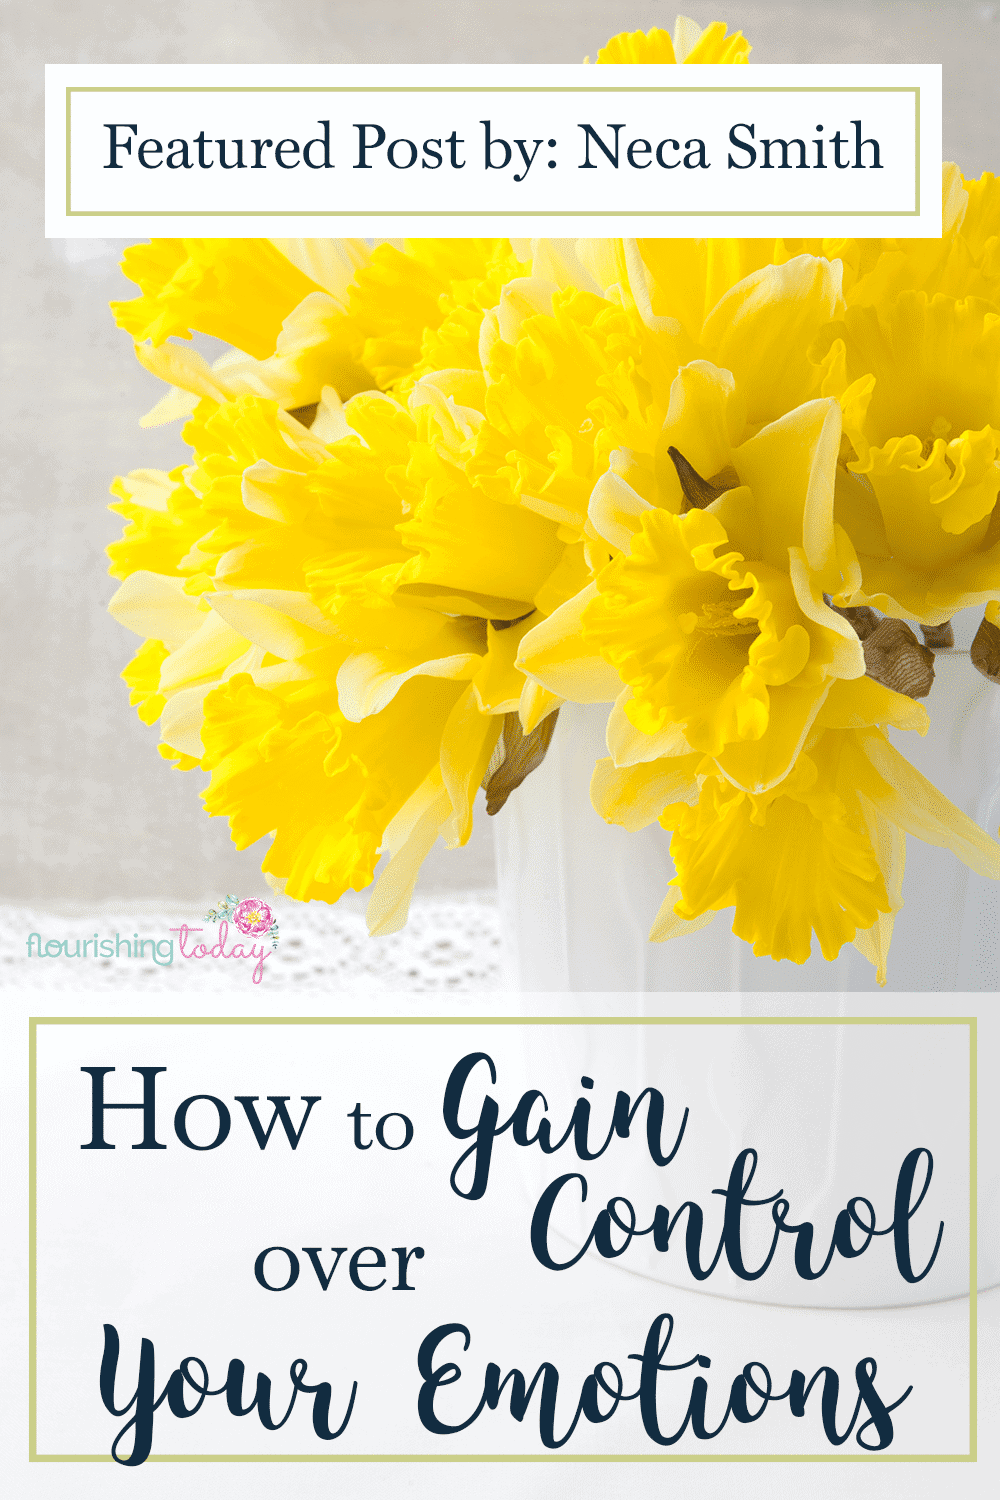 Do you struggle to control your emotions? Our emotions can easily try to rule us, leaving us feeling helpless. Here are 4 ways to control your emotions.